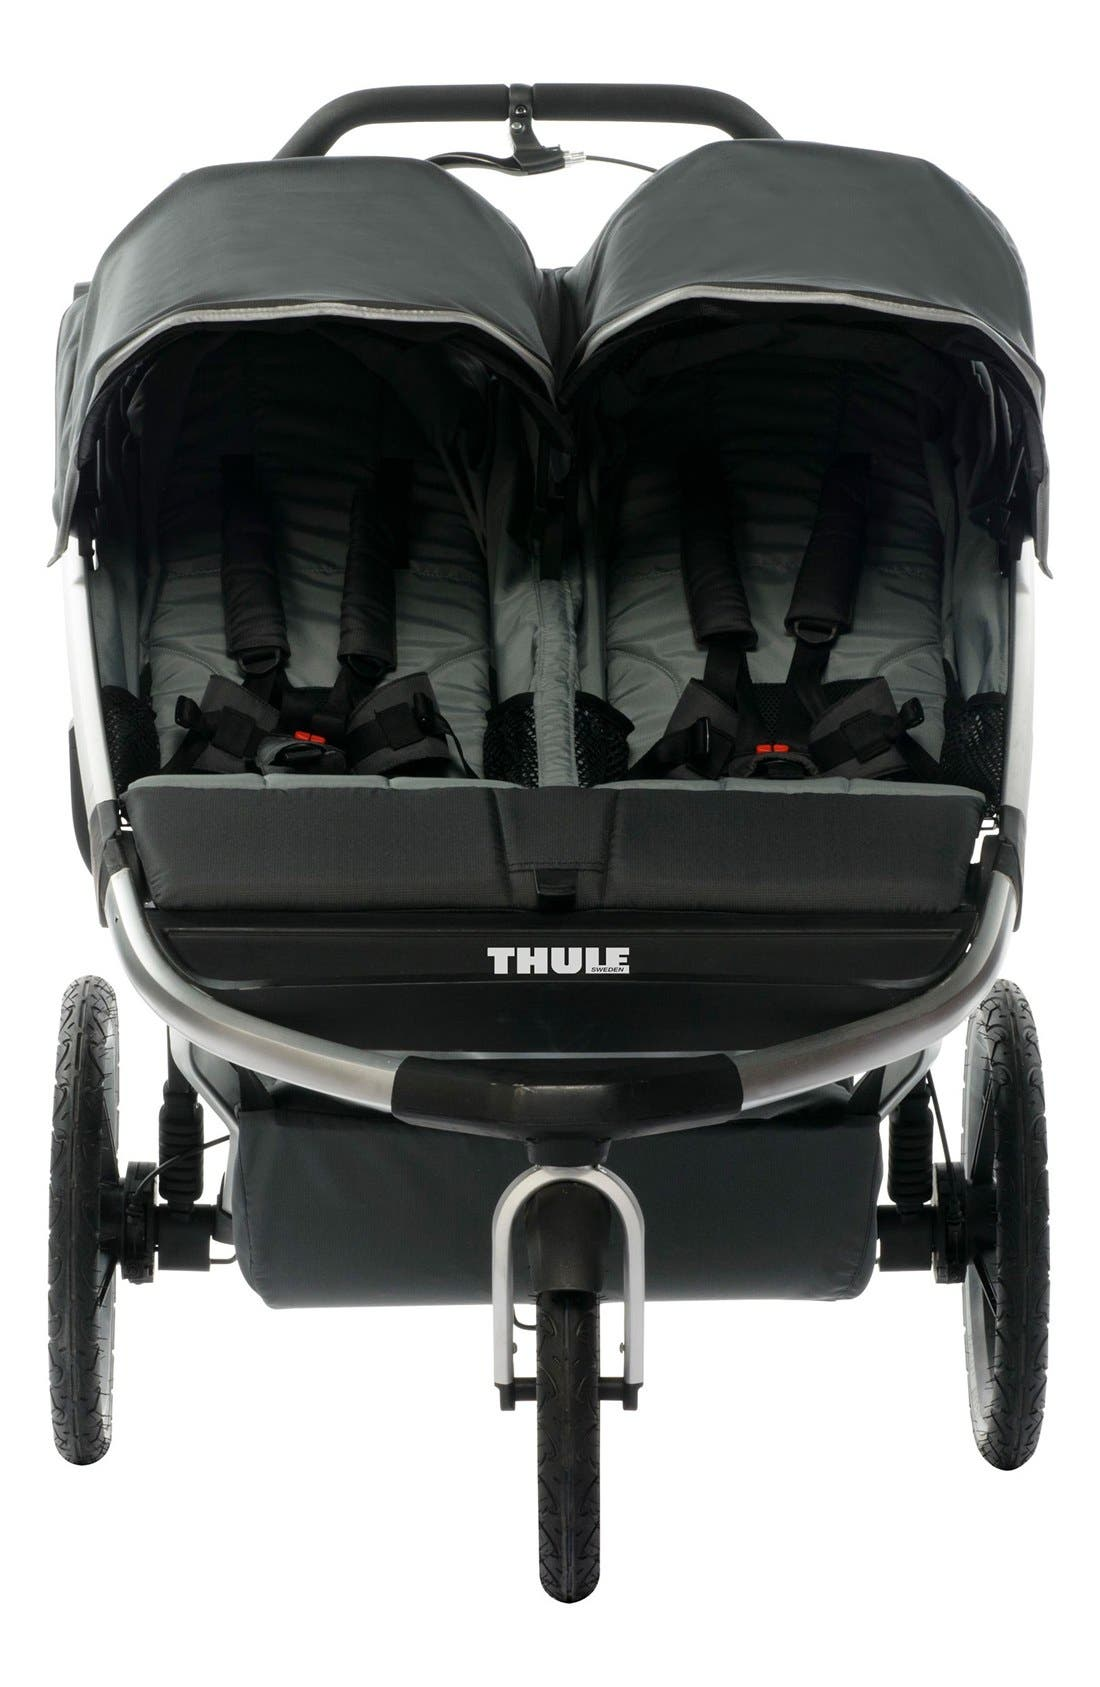 THULE 'Urban Glide 2' Double Jogging Stroller with